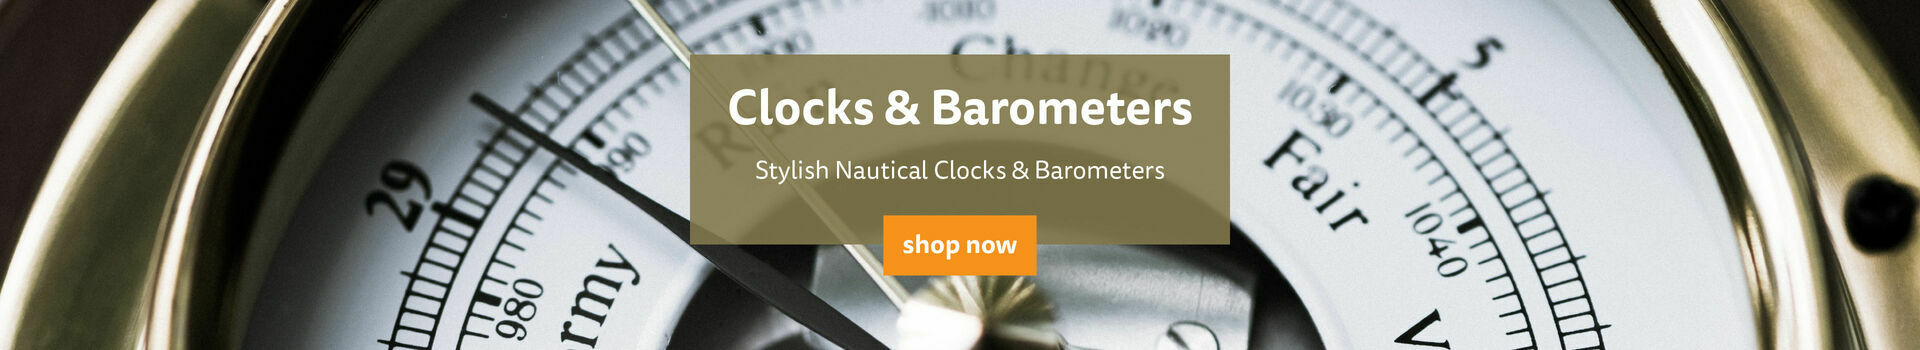 Shop Our Clocks & Barometers